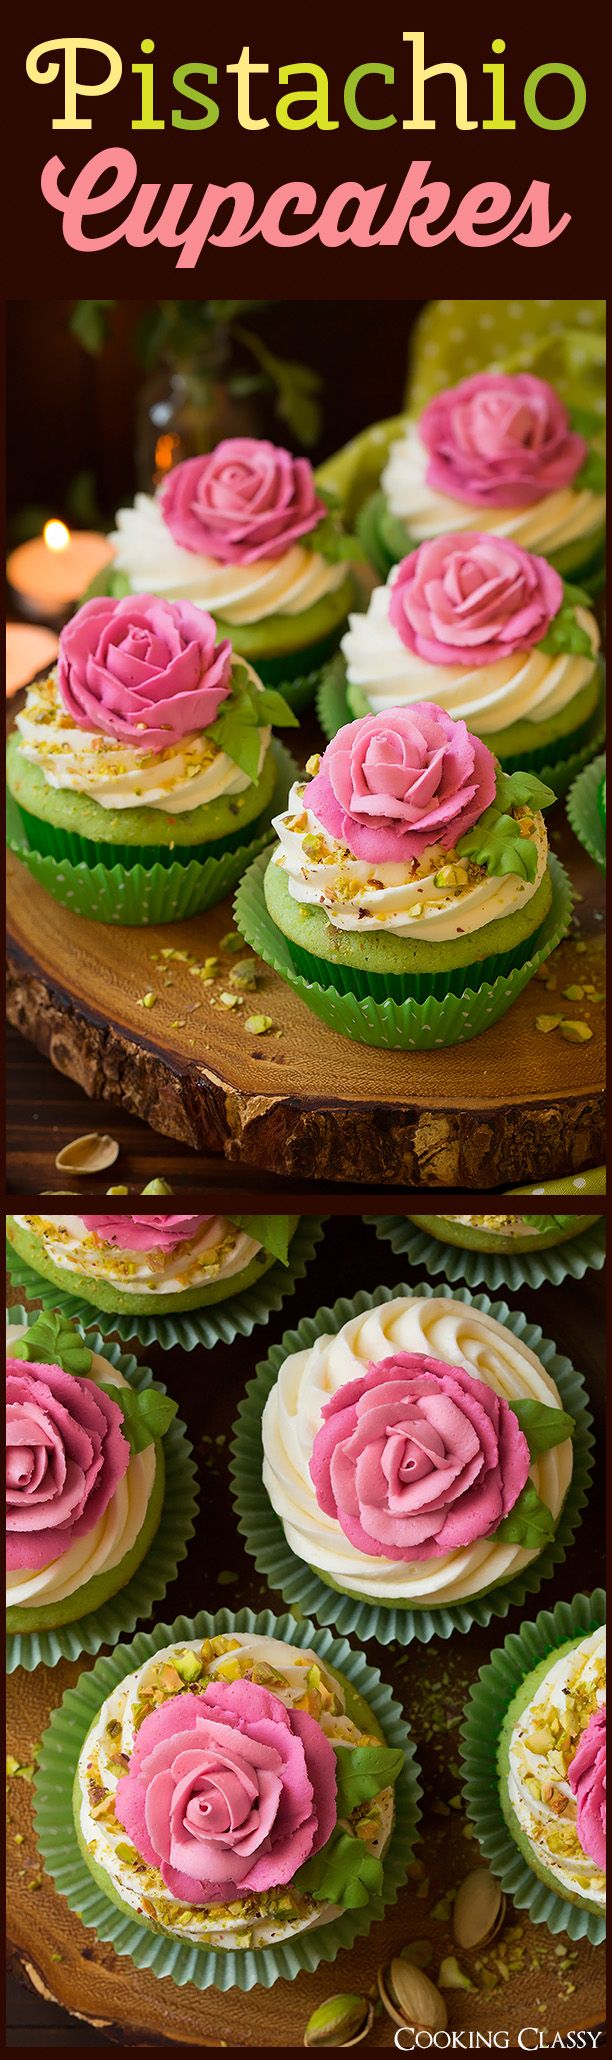 17 Best ideas about Pistachio Cupcakes on Pinterest ...